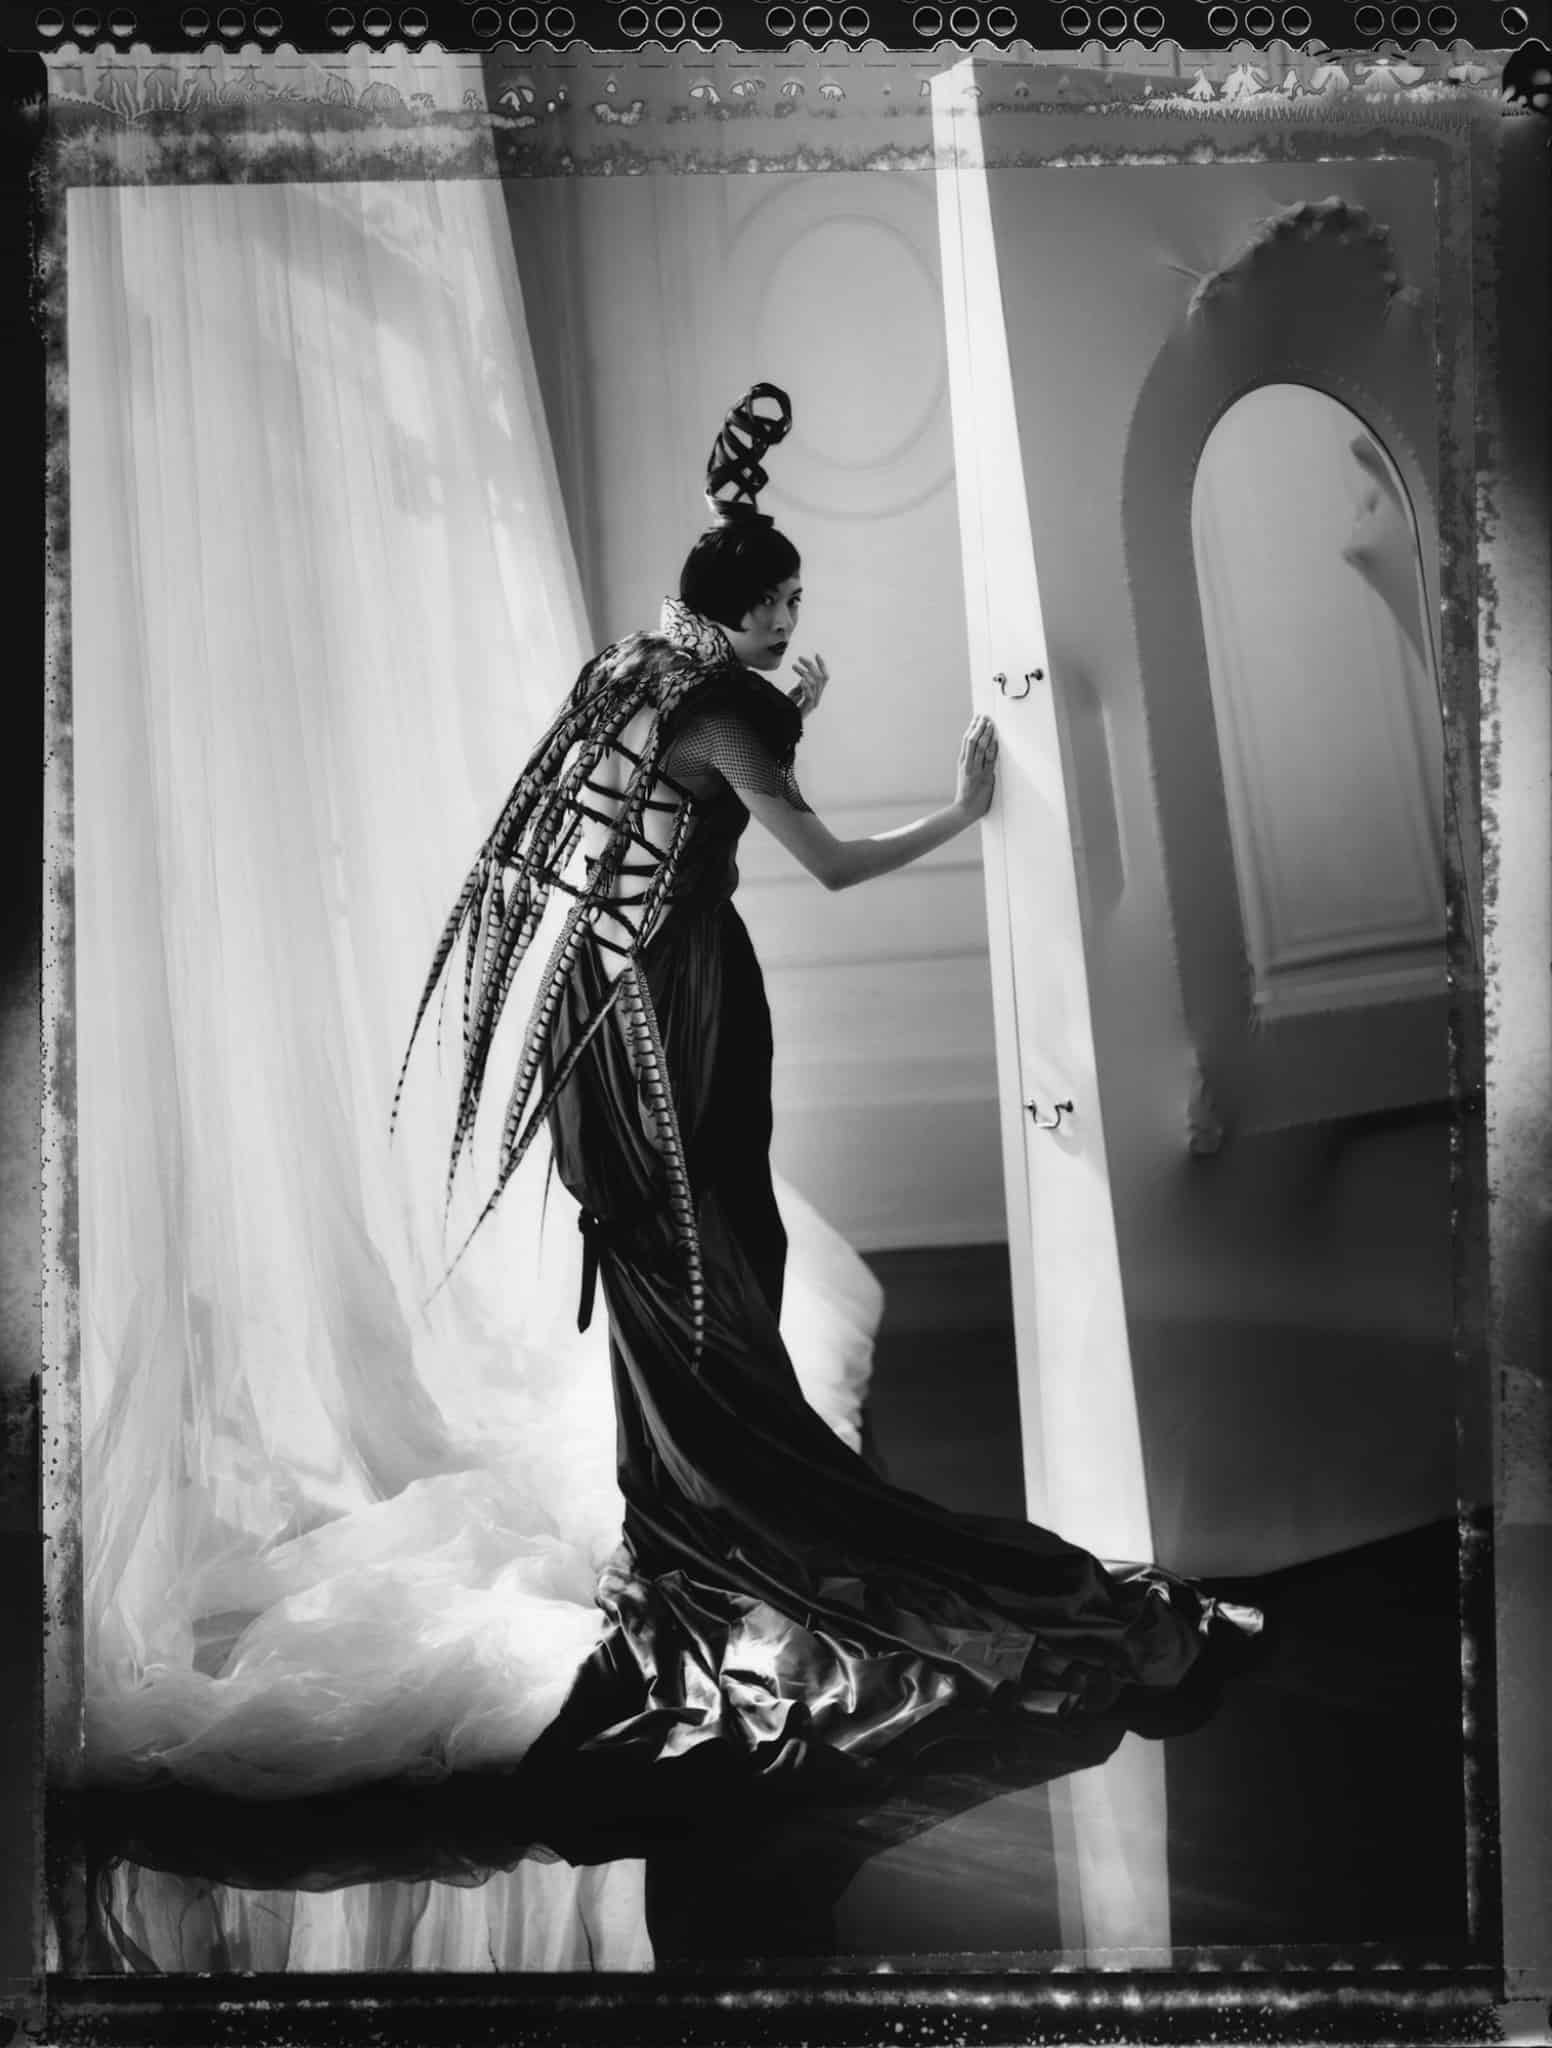 Fine art b/w photography of a fashion model wearing haute couture by John Paul Gaultier, hair by Odile Gilbert, photographed at Gaultier haute coutre show room, Paris.